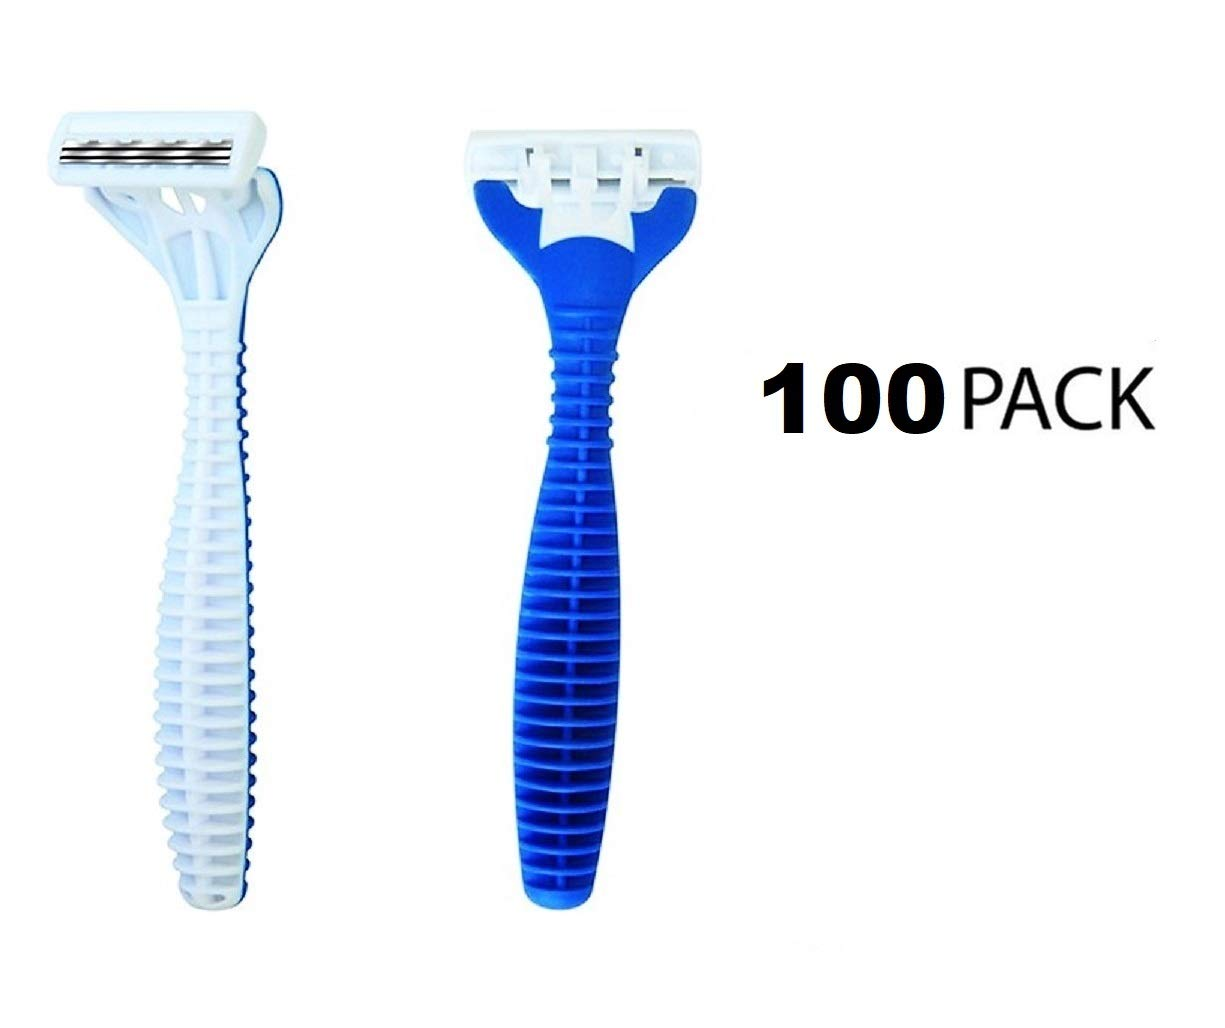 Spartan Razor -100 Triple Blade Men's Razors with Aloe Strip - Box of Disposable Safety Razors for Men with 3 Blades - 100 Bulk Pack – Cartridge Quality Razor Blades in a Disposable Razor